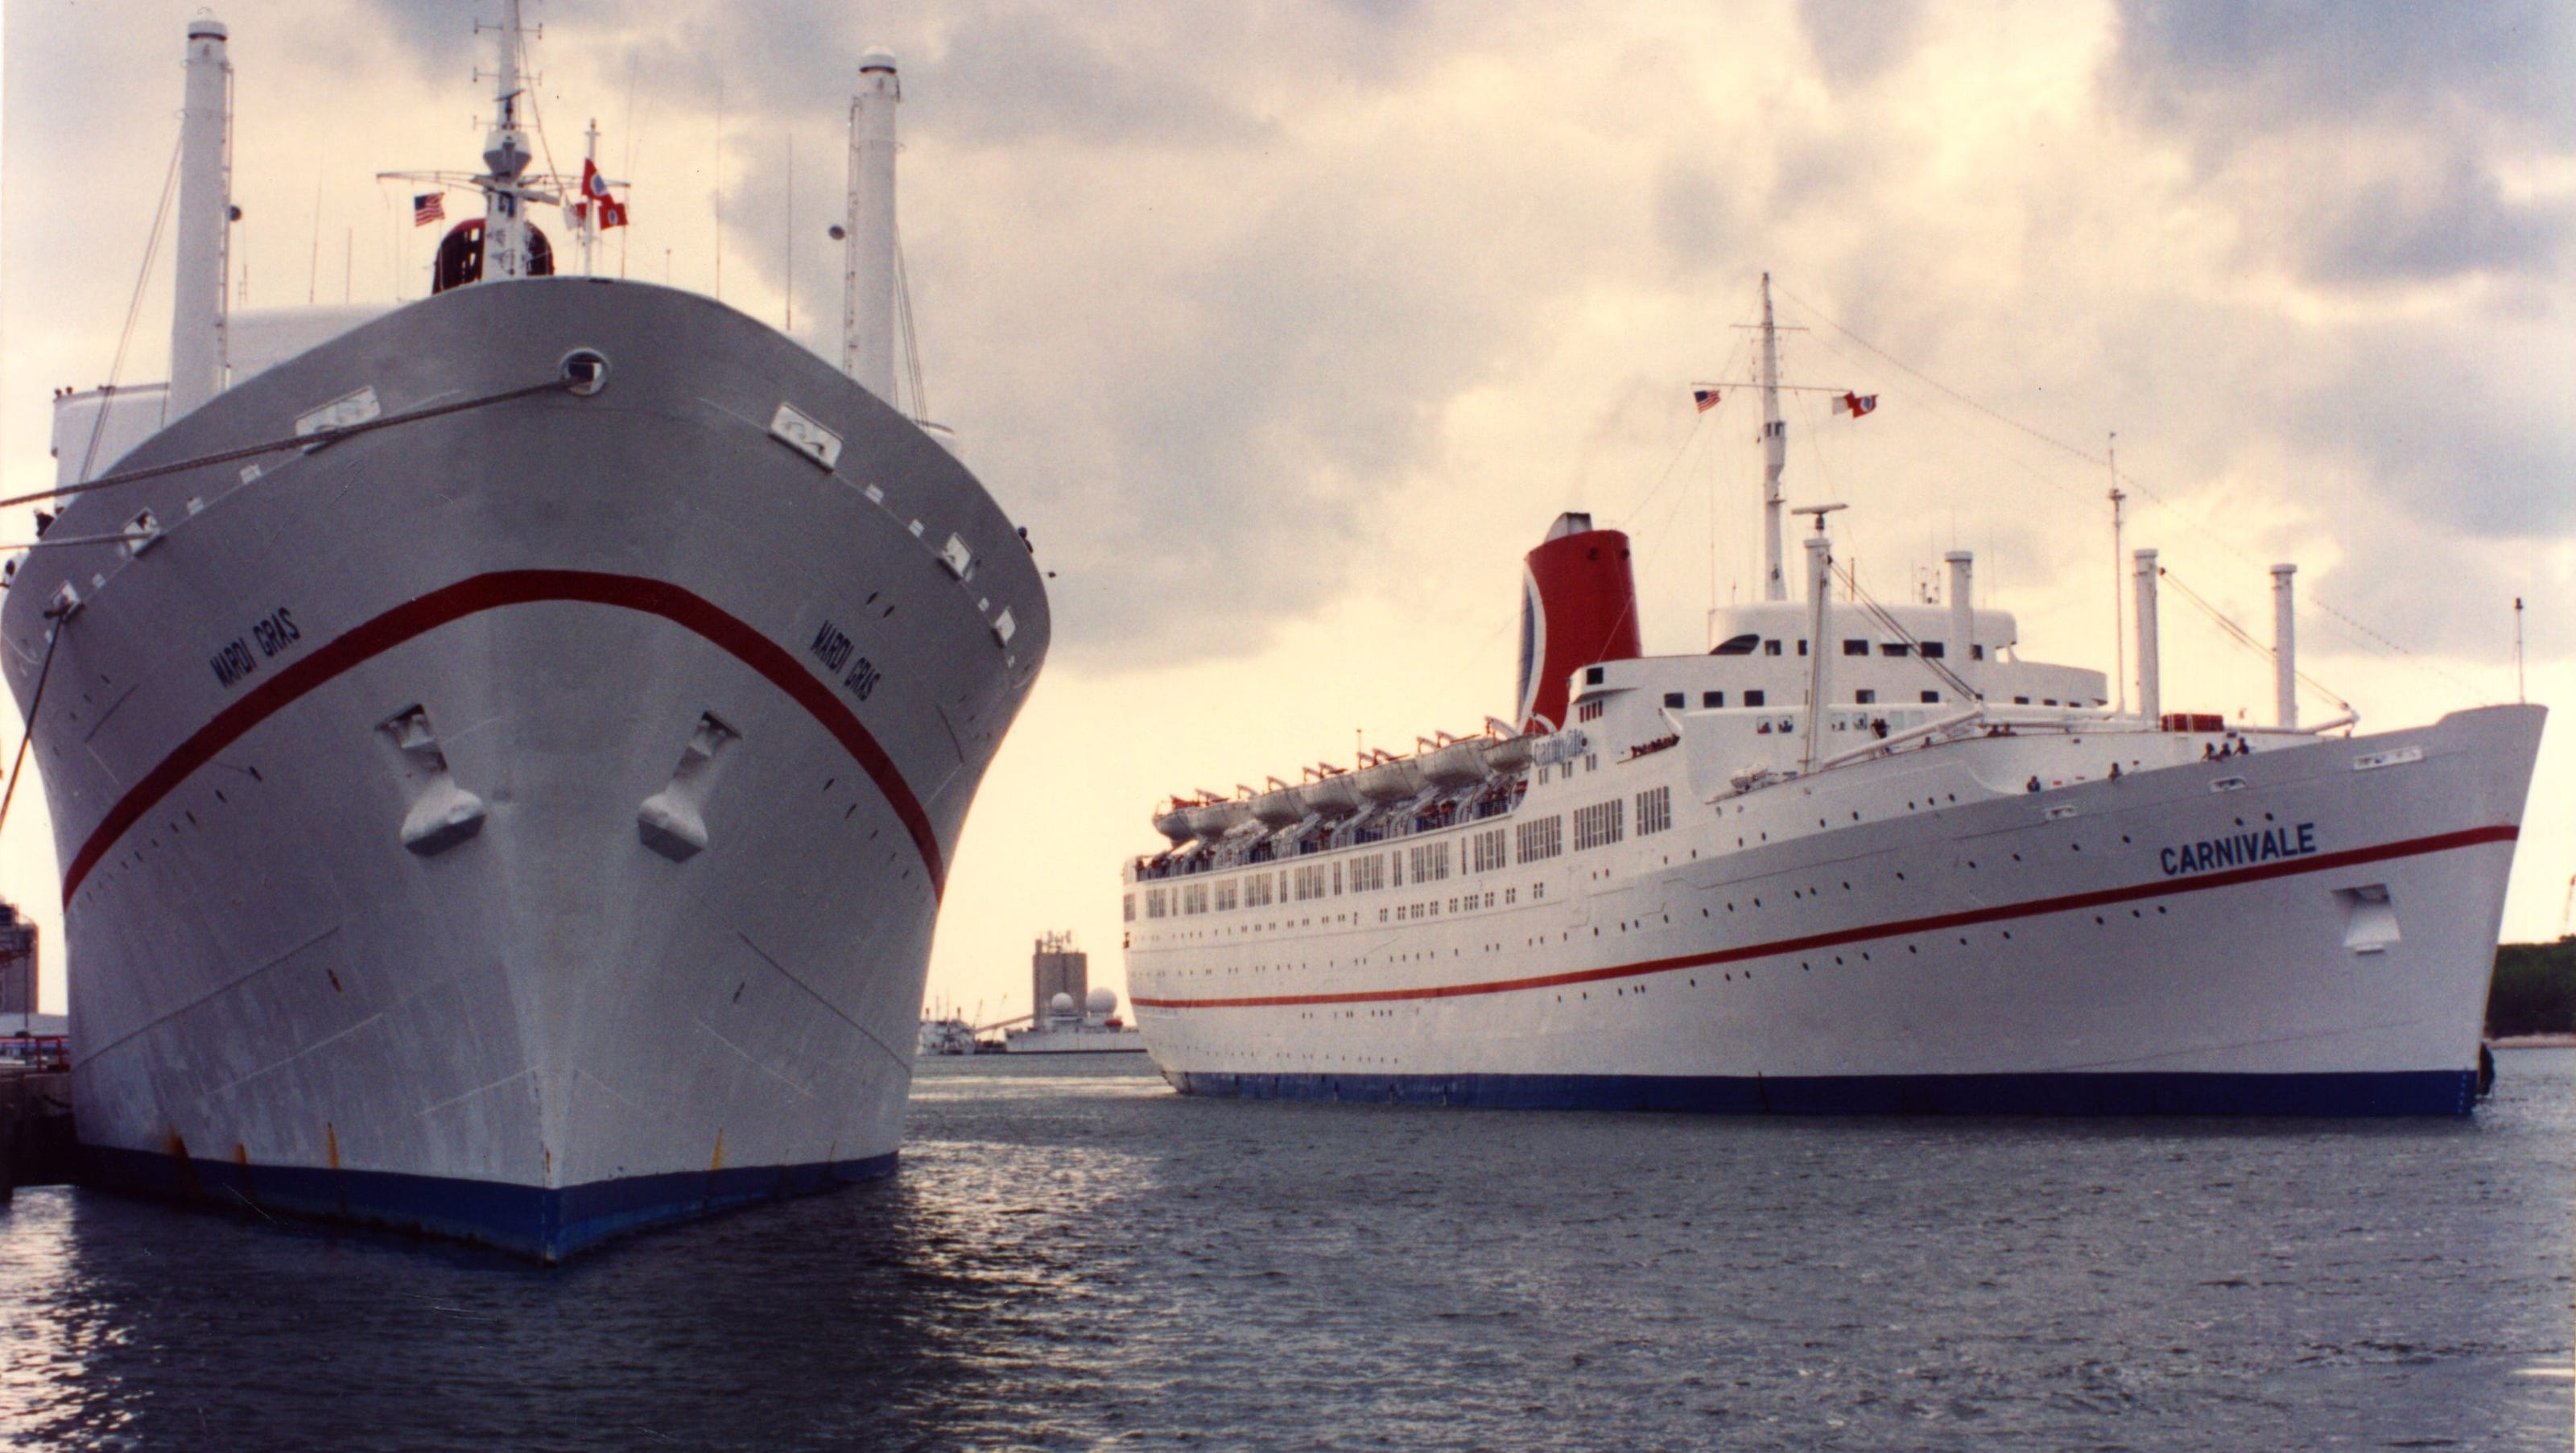 Inside the Carnival Cruise Line ships that made cruising history (usatoday.com)